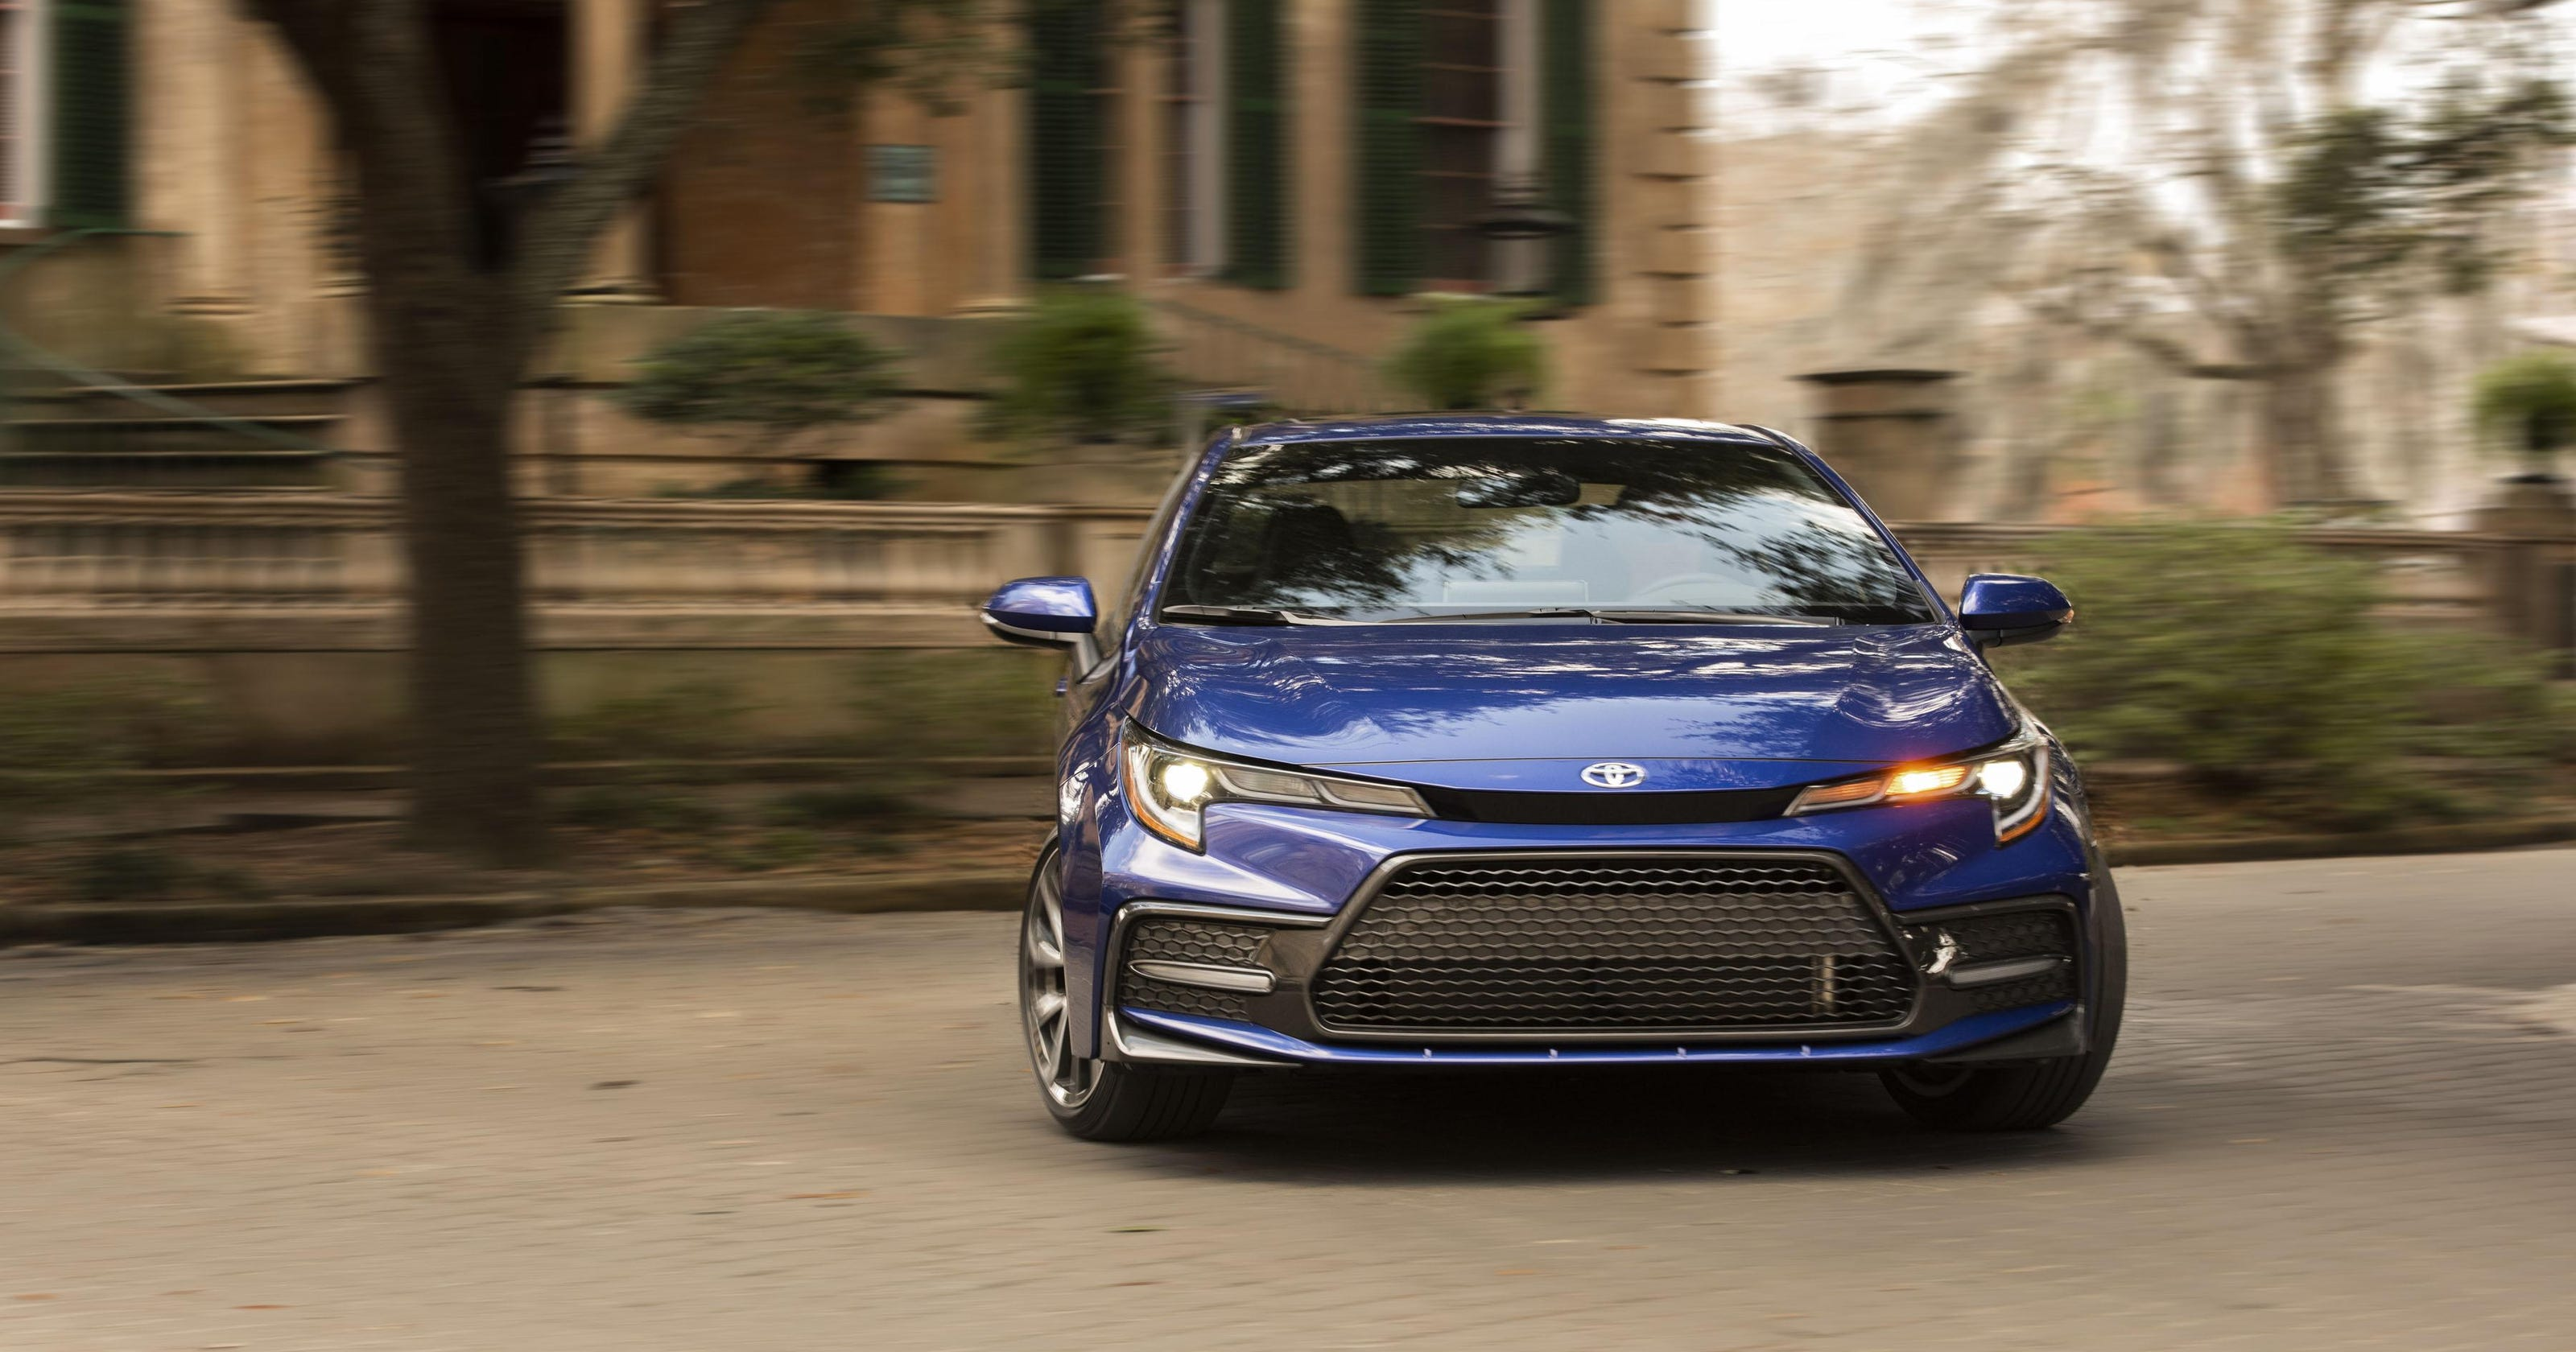 Review: 2020 Toyota Corolla embraces convenience of ubiquity